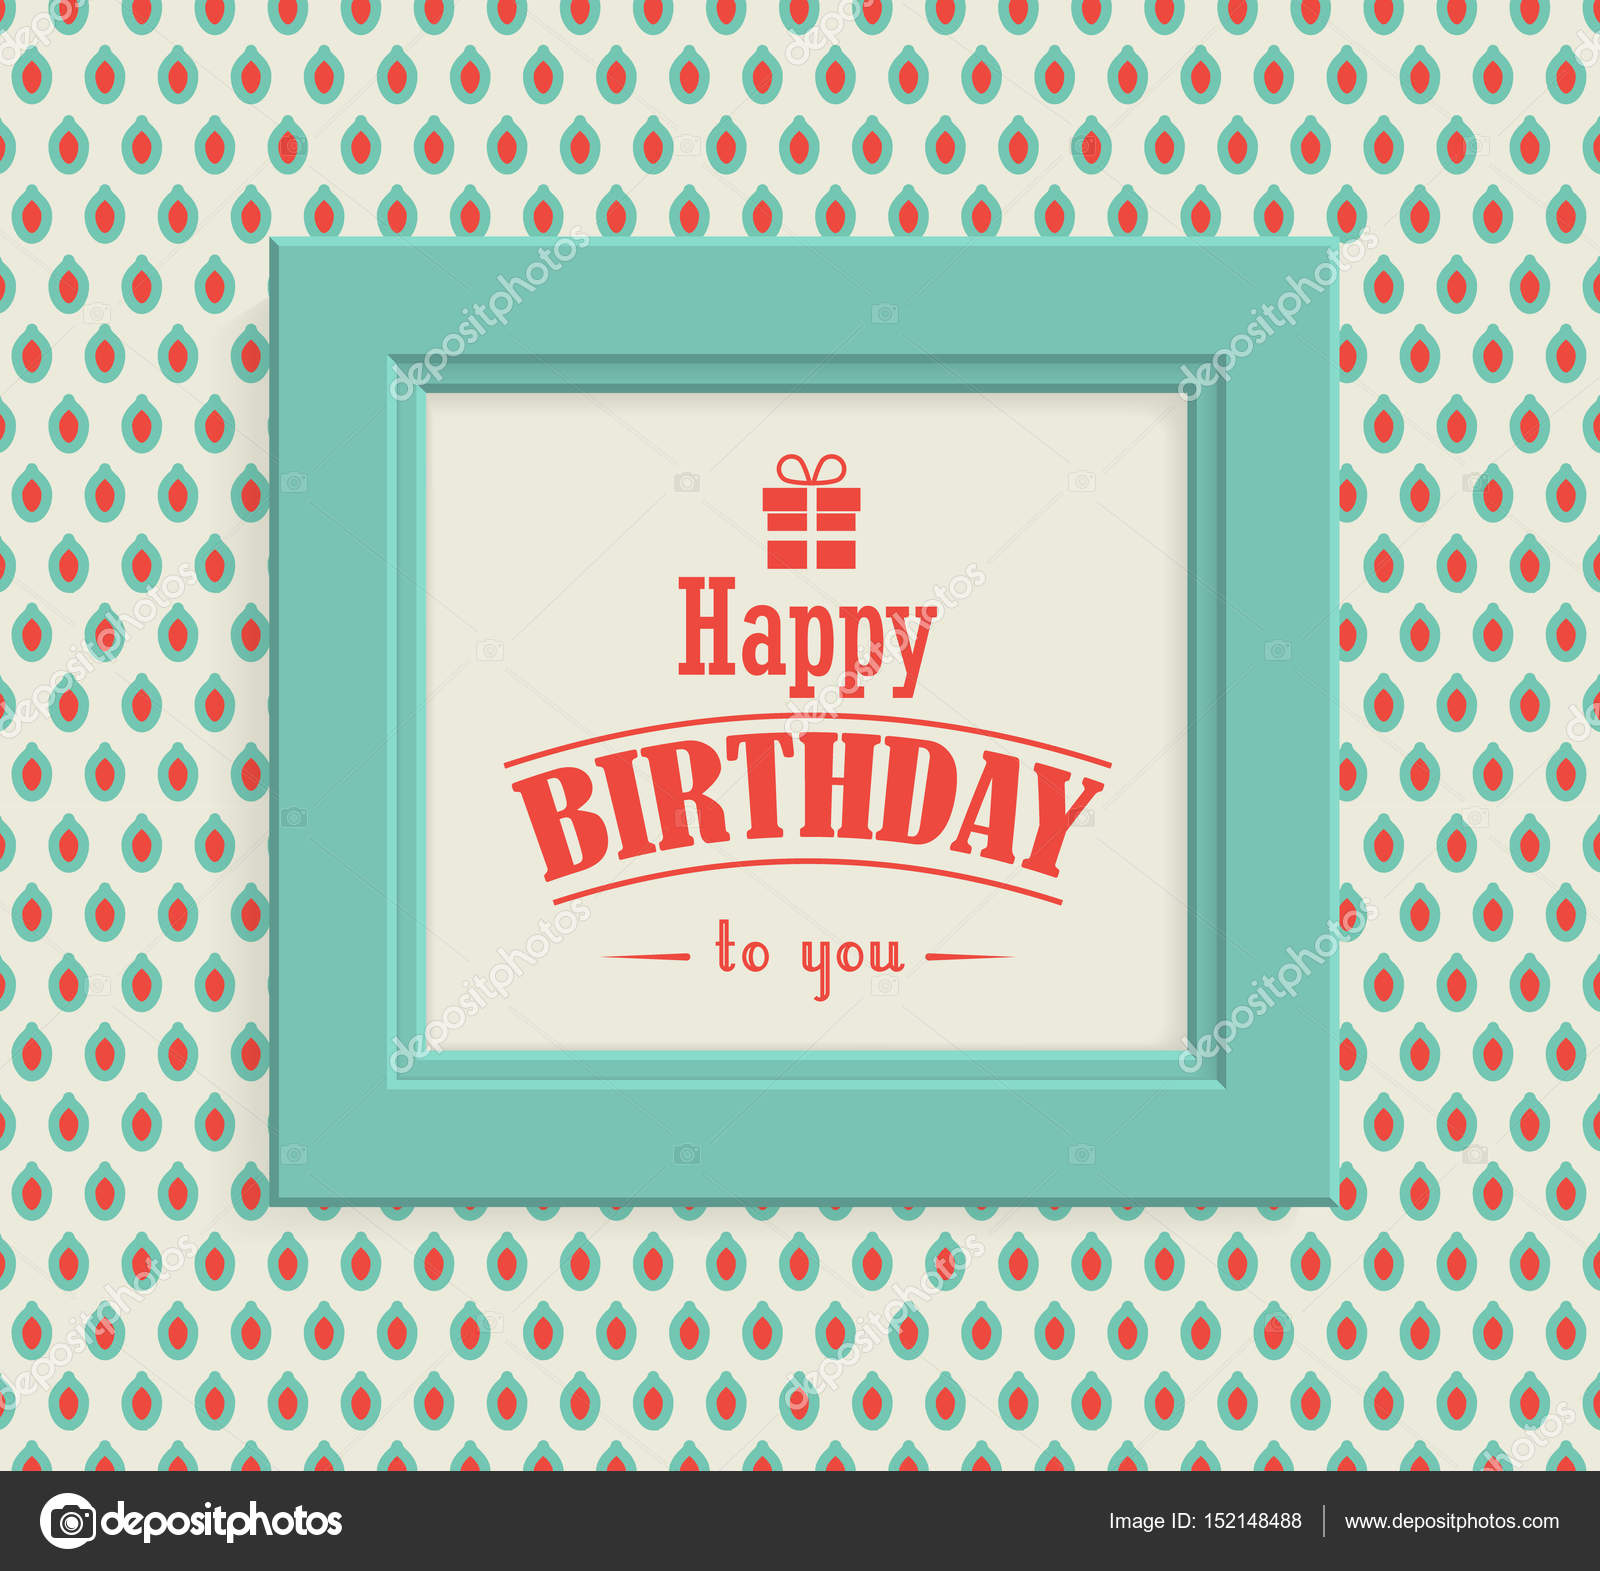 Happy birthday greeting card in vintage style stock vector happy birthday greeting card in vintage style stock vector m4hsunfo